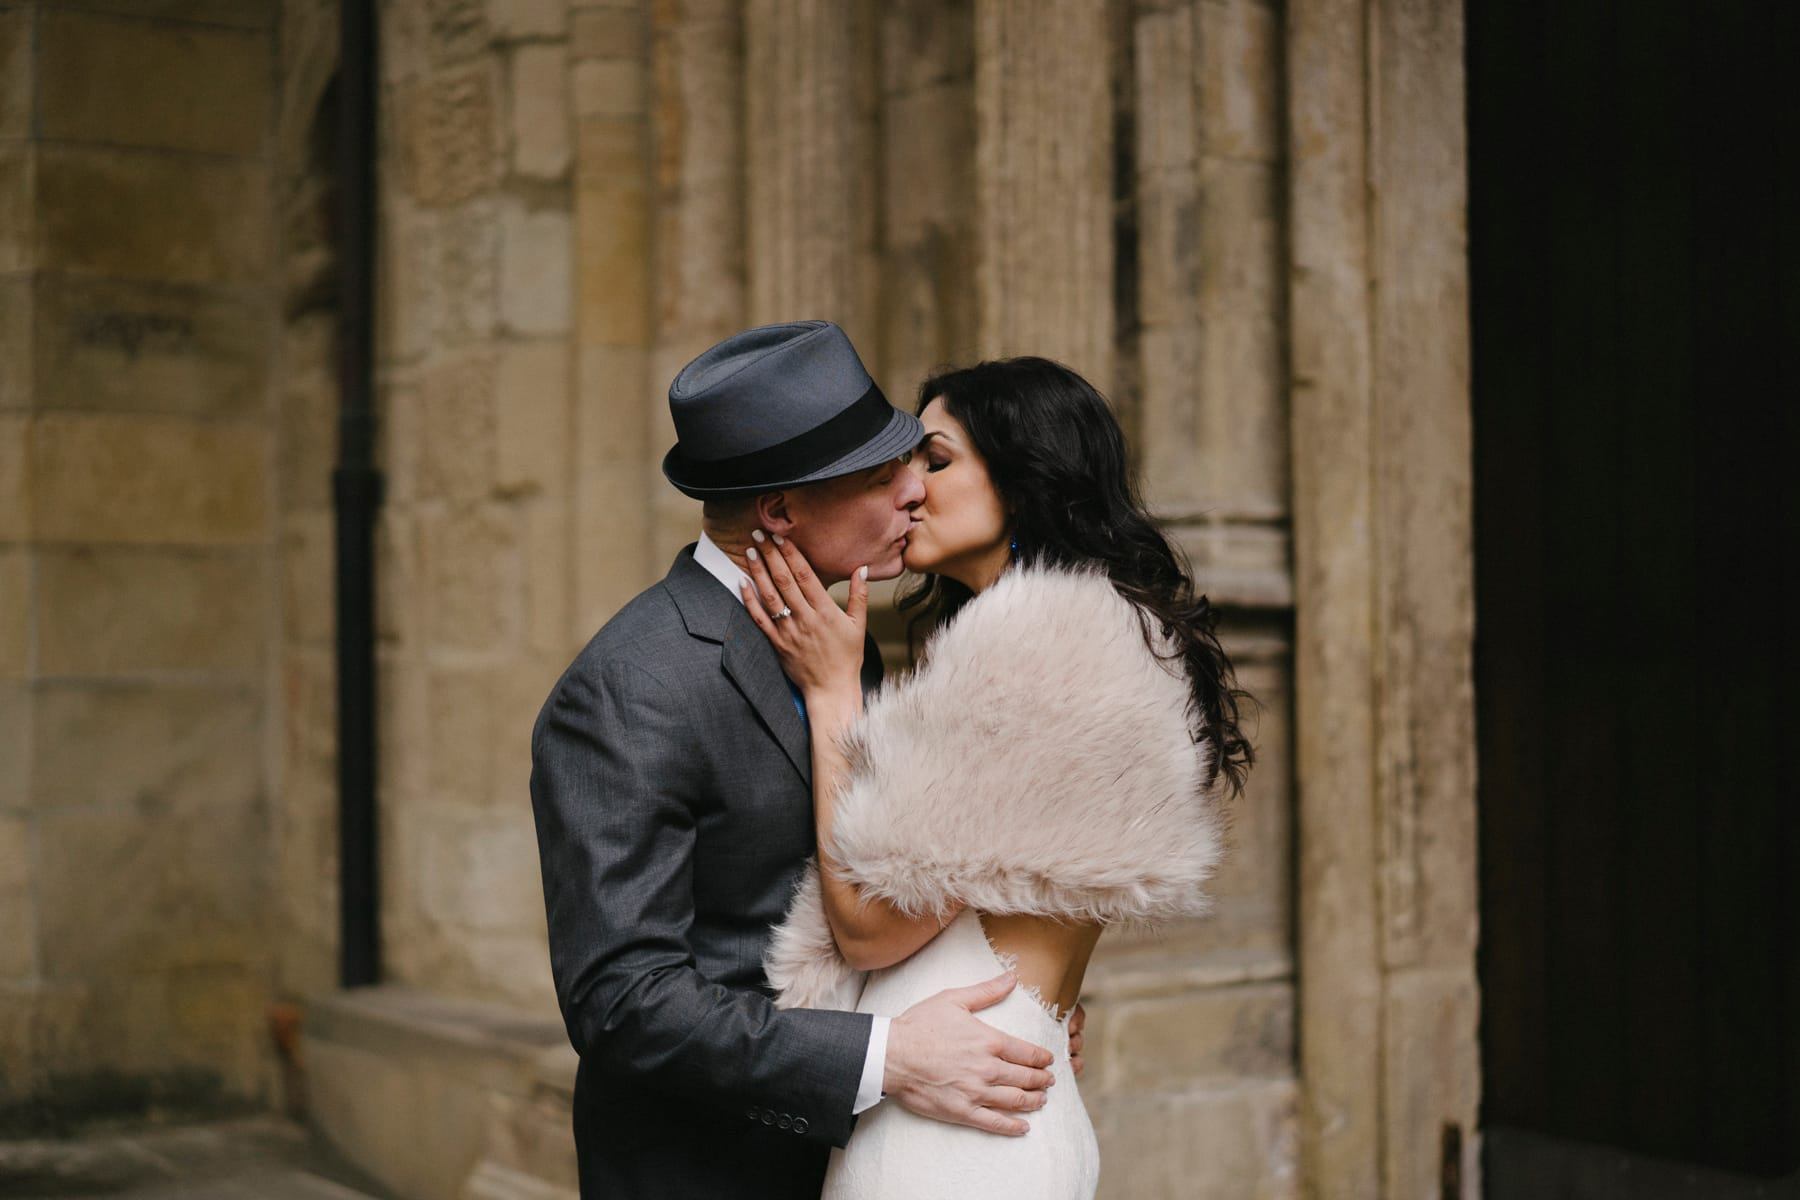 Couple photography session in Spain